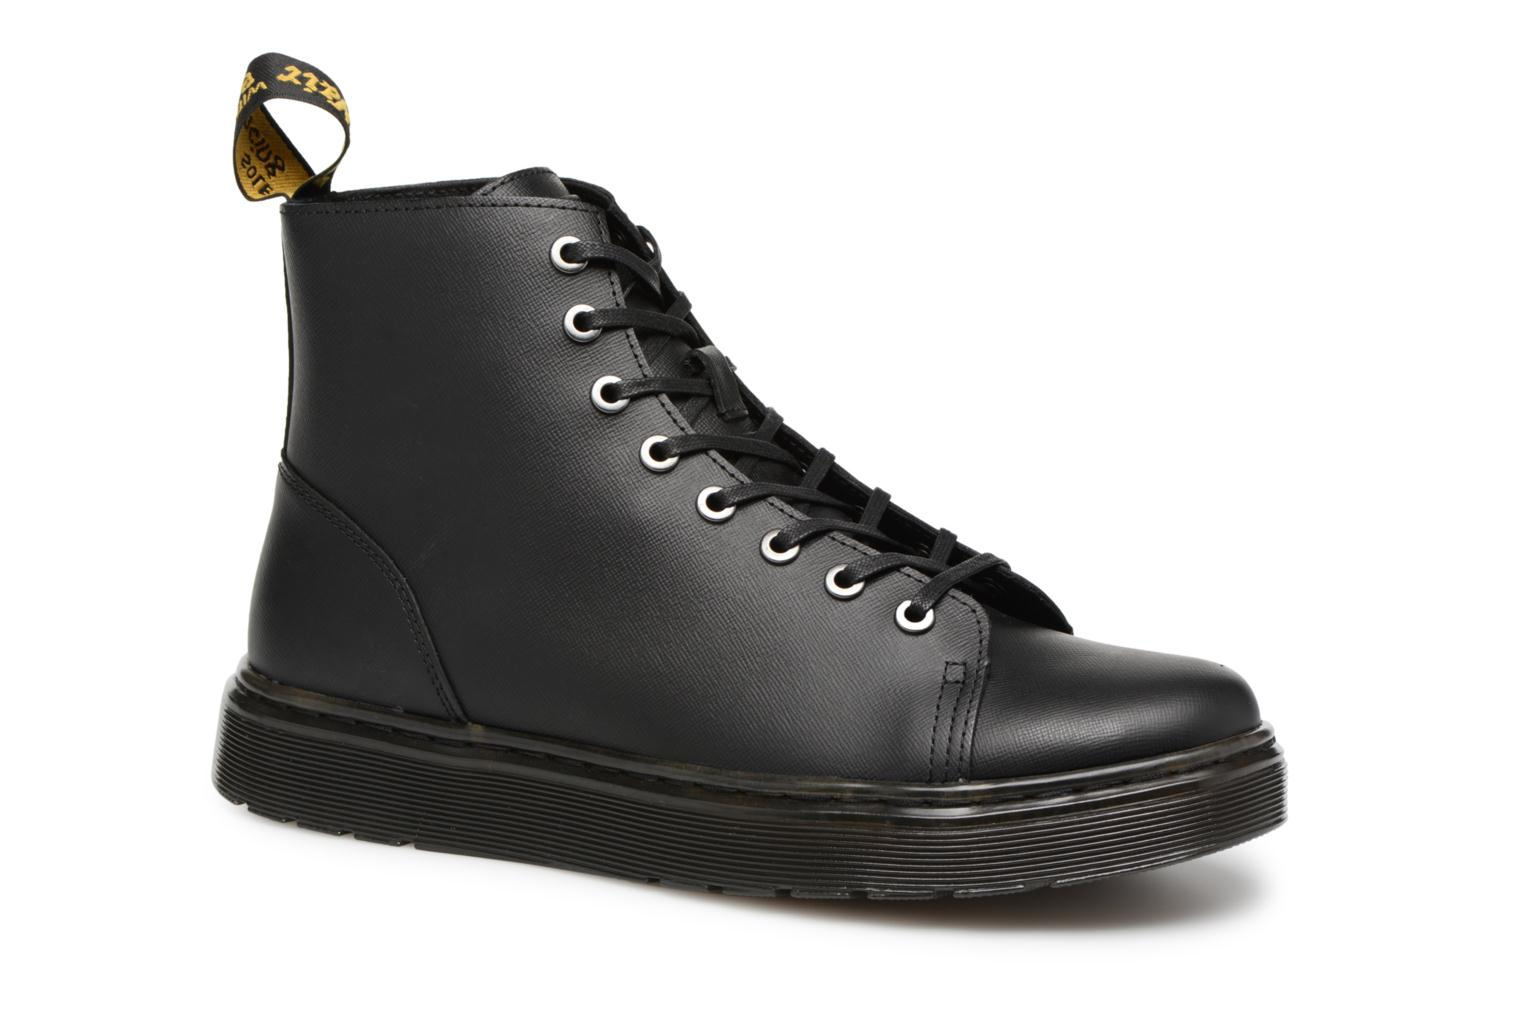 Marques Chaussure homme Dr. Martens homme Talib Black Smooth Straw Grain